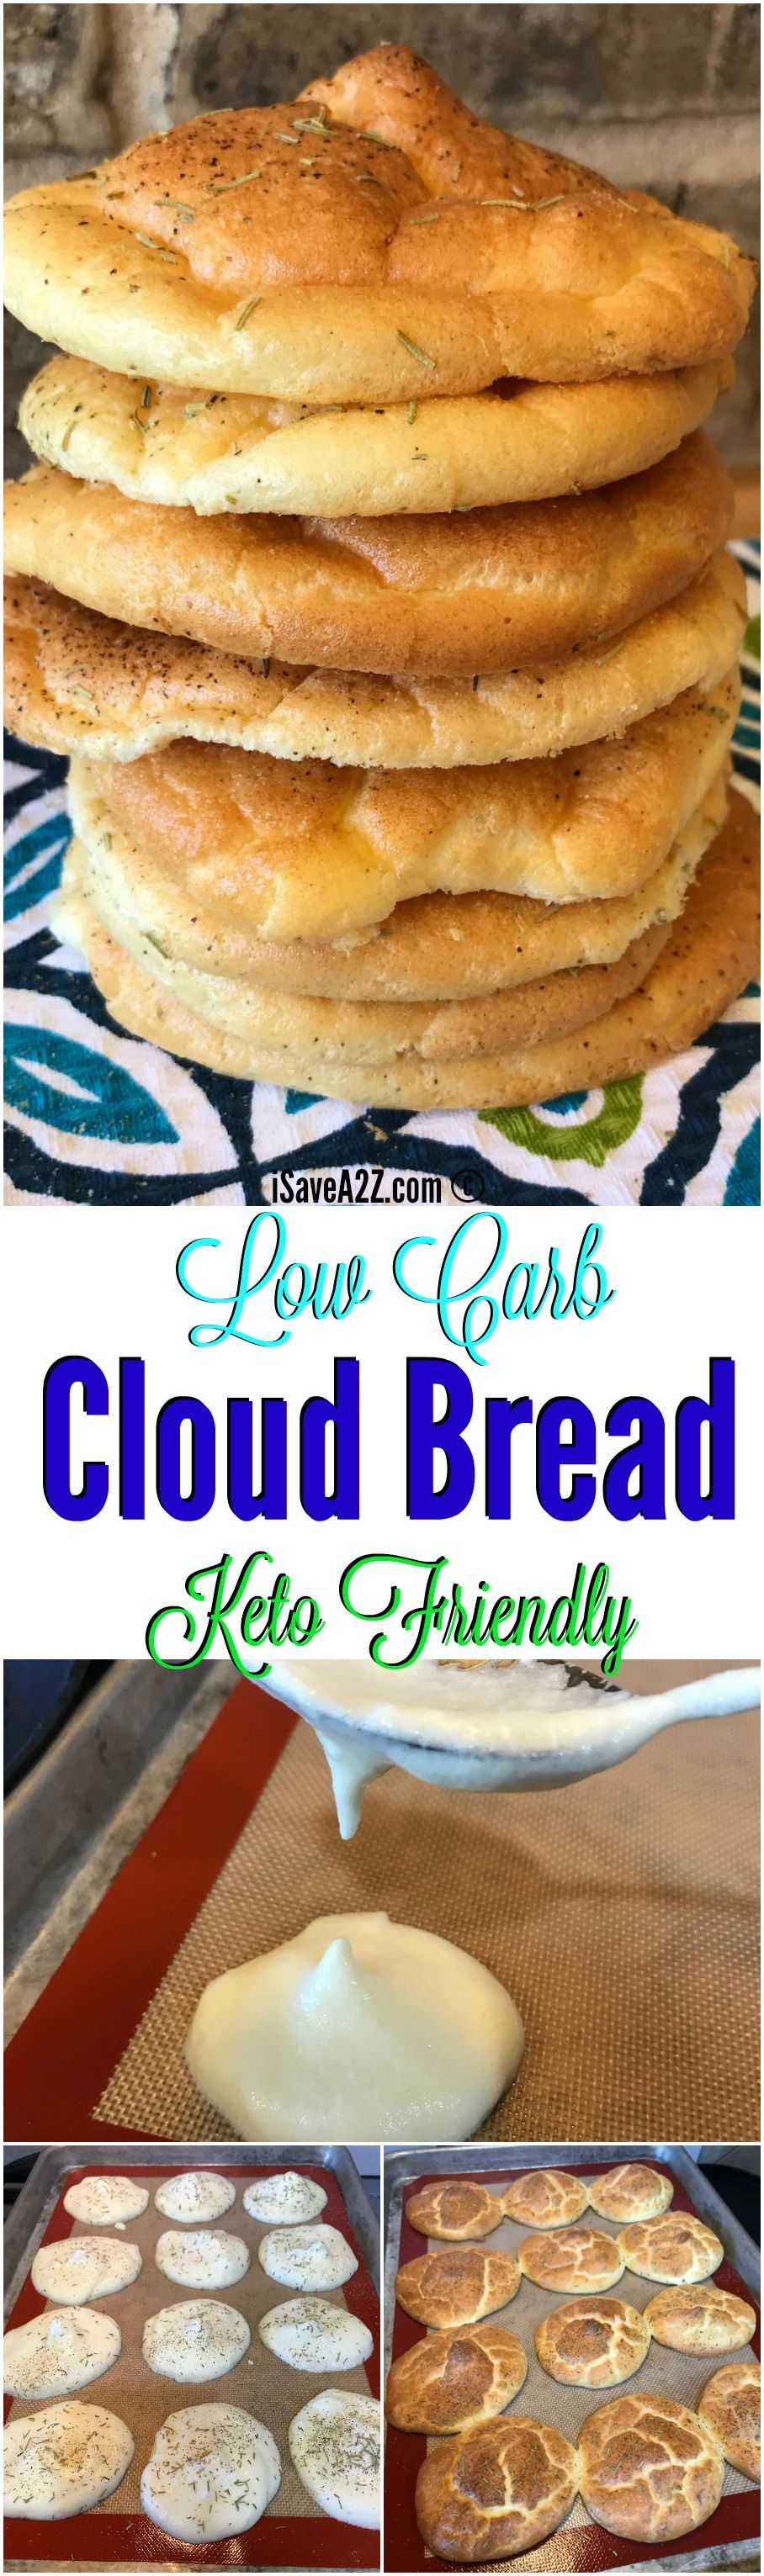 Low Carb Cloud Bread Recipe Made with Baking Soda Recipe